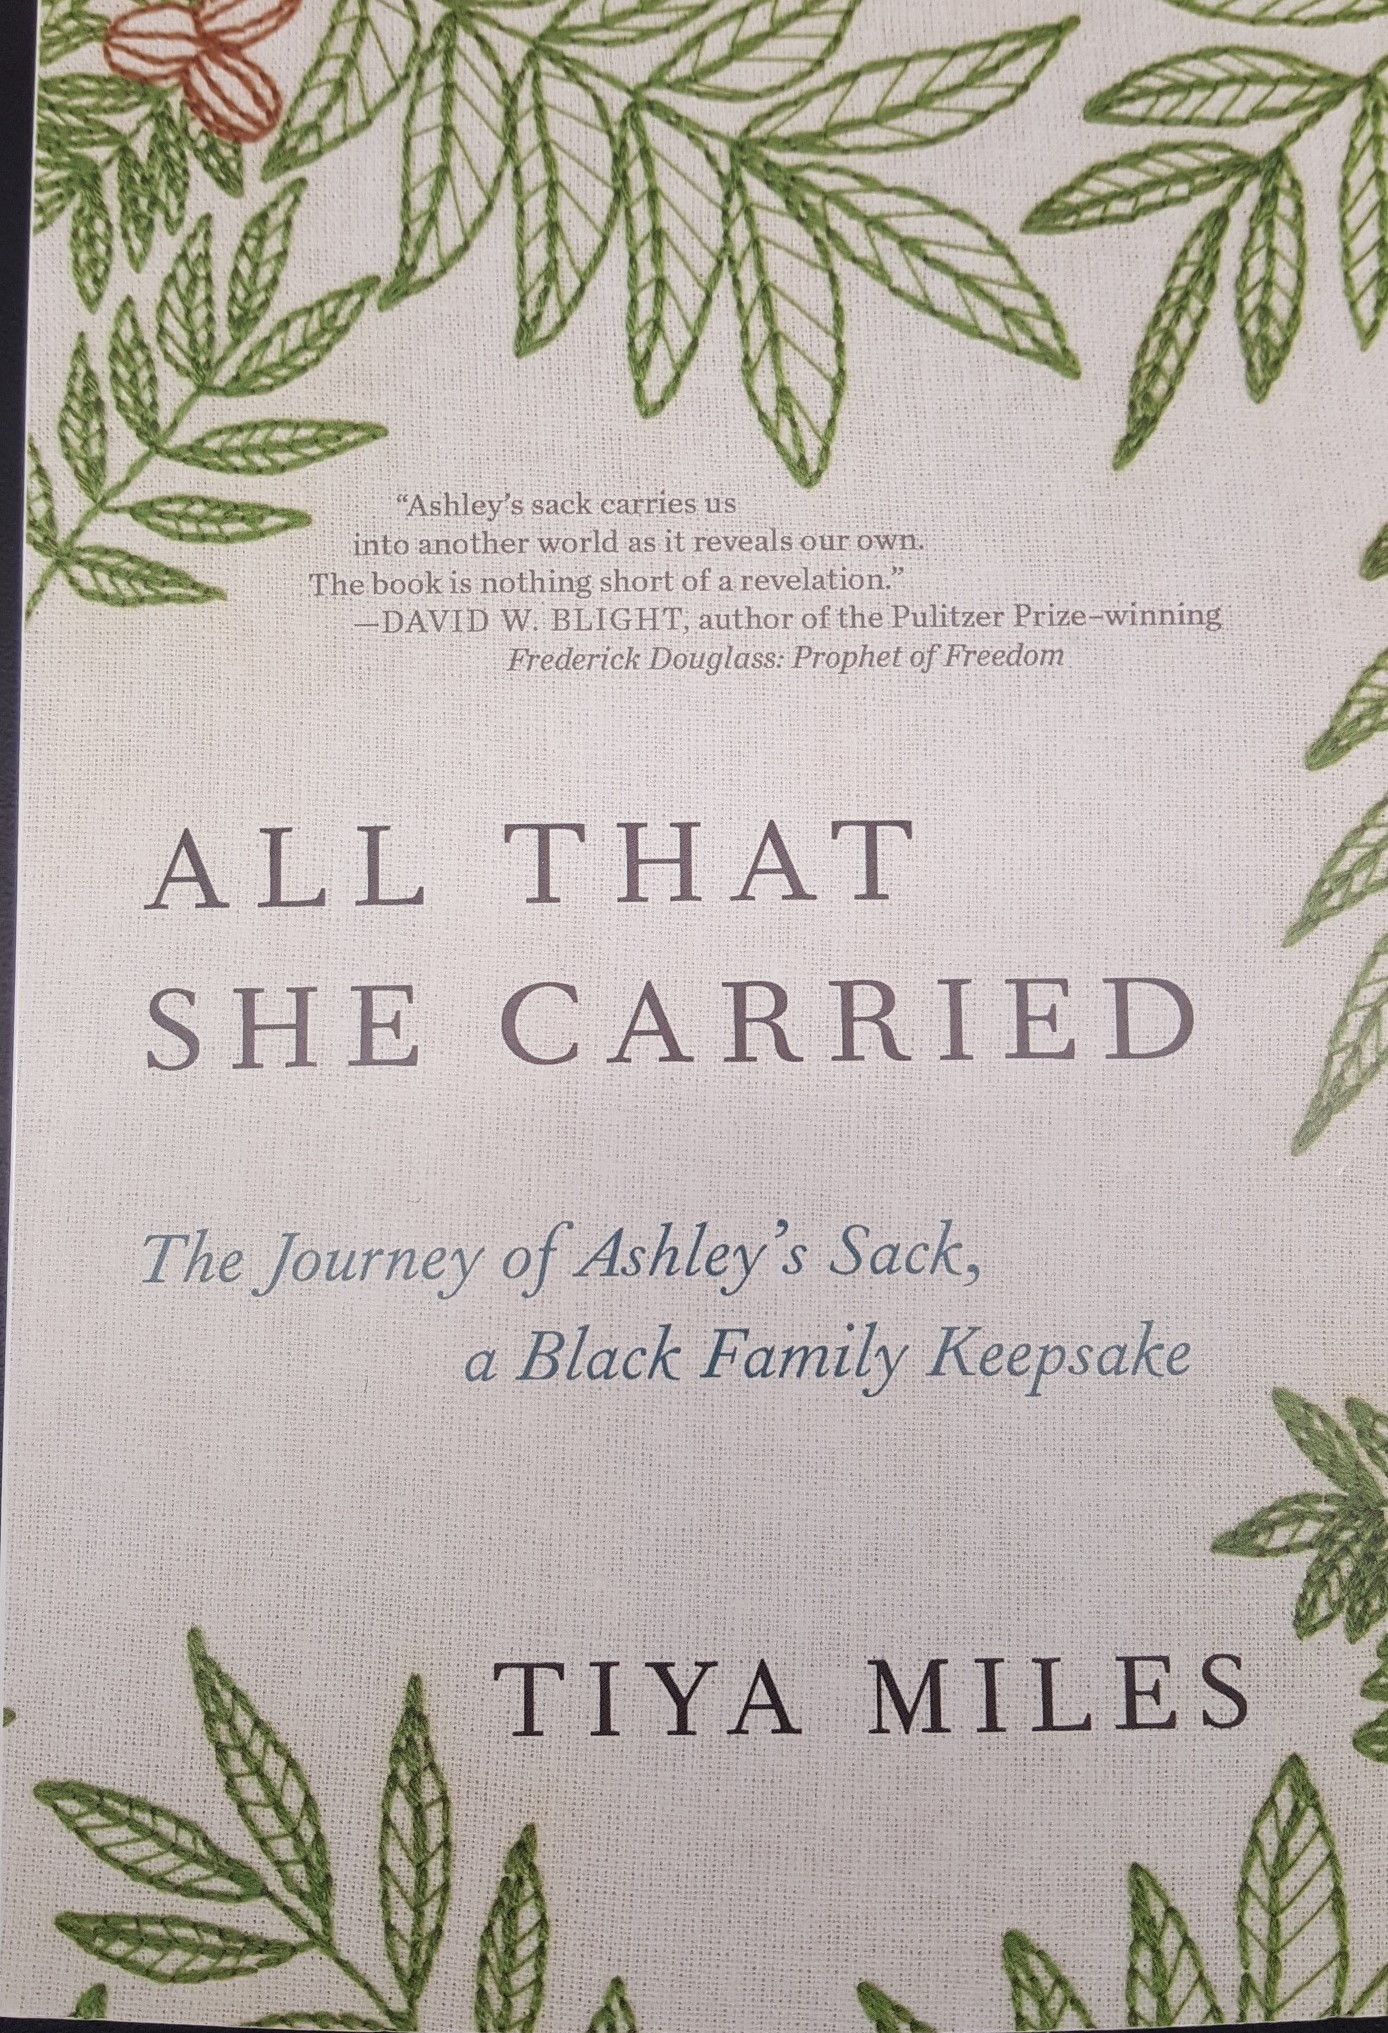 Front Cover for book All That She Carried by Tiya Miles